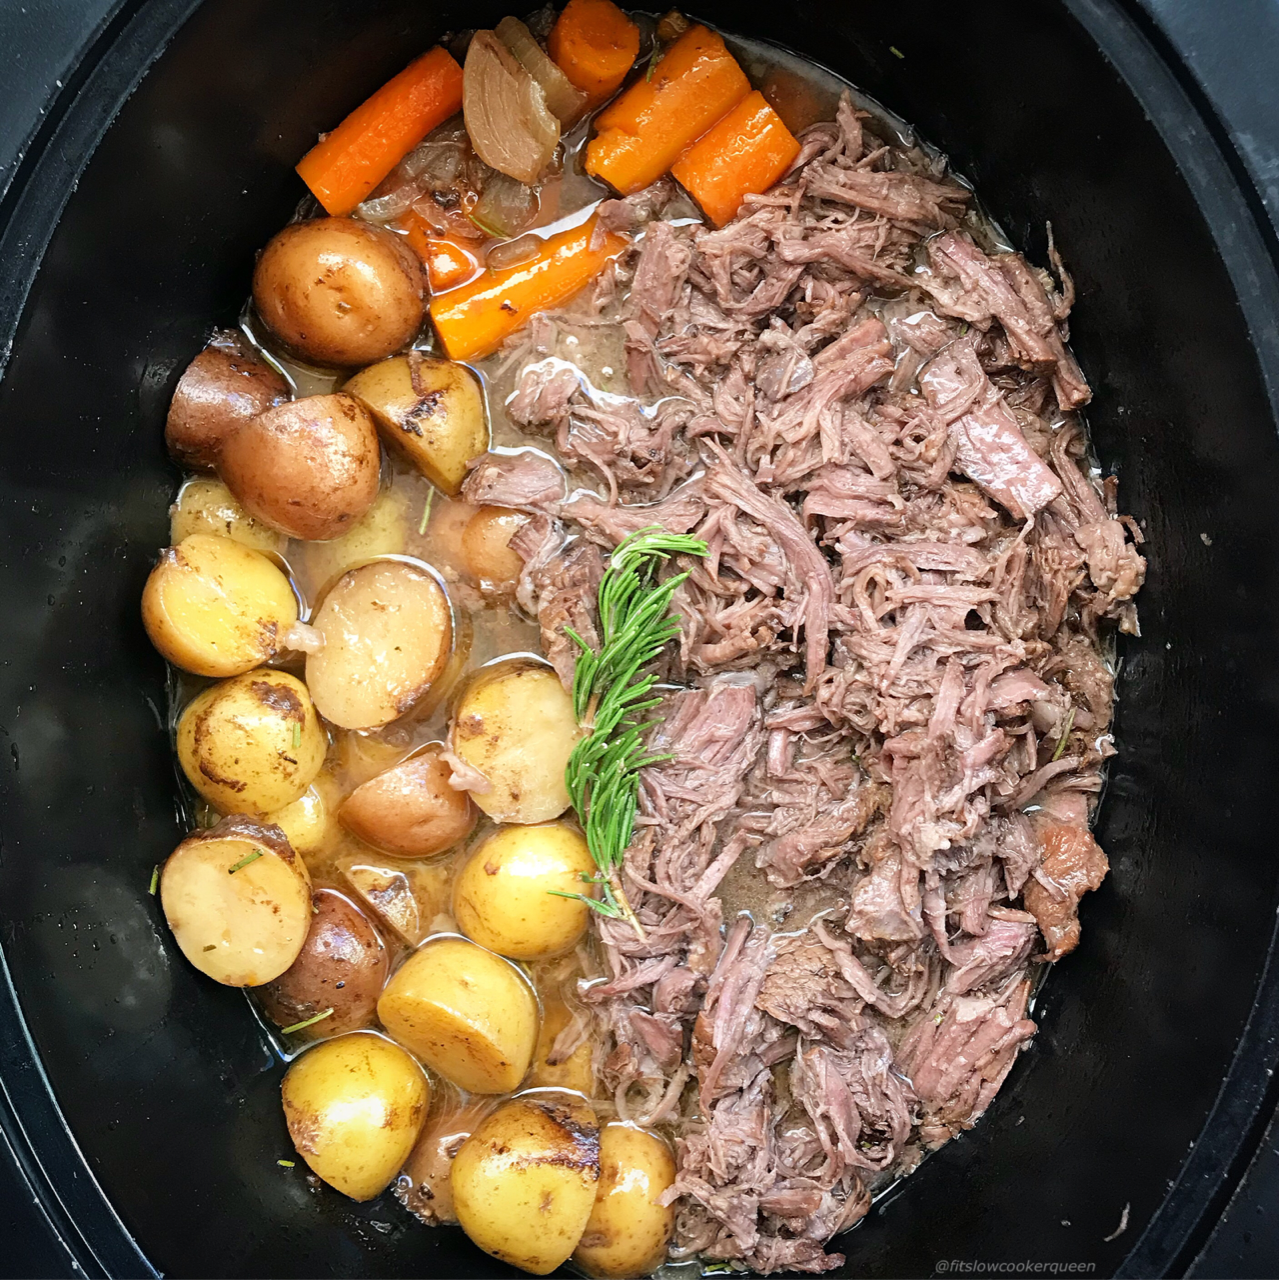 A homemade balsamic dijon sauce is used to jazz up this simple slow cooker pot roast recipe. Whole30 and paleo, this is not your average roast.